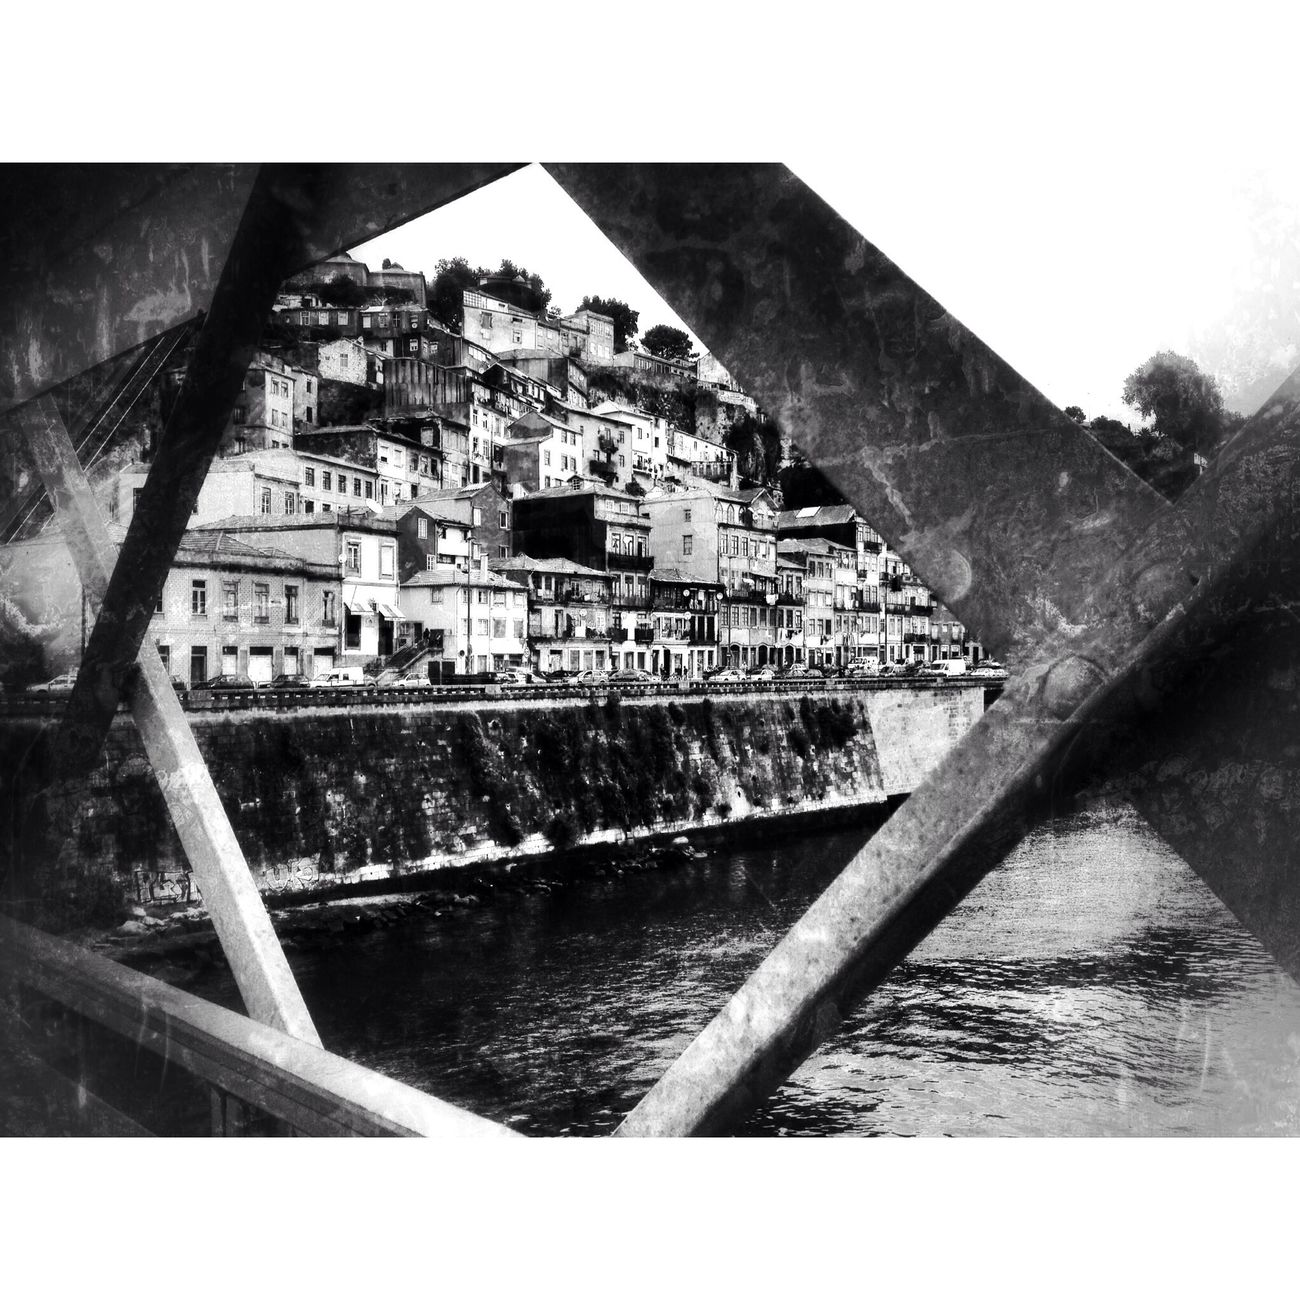 EyeEm Best Shots - Black + White EyeEm Best Shots - Landscape Walking Around The City  in Porto.